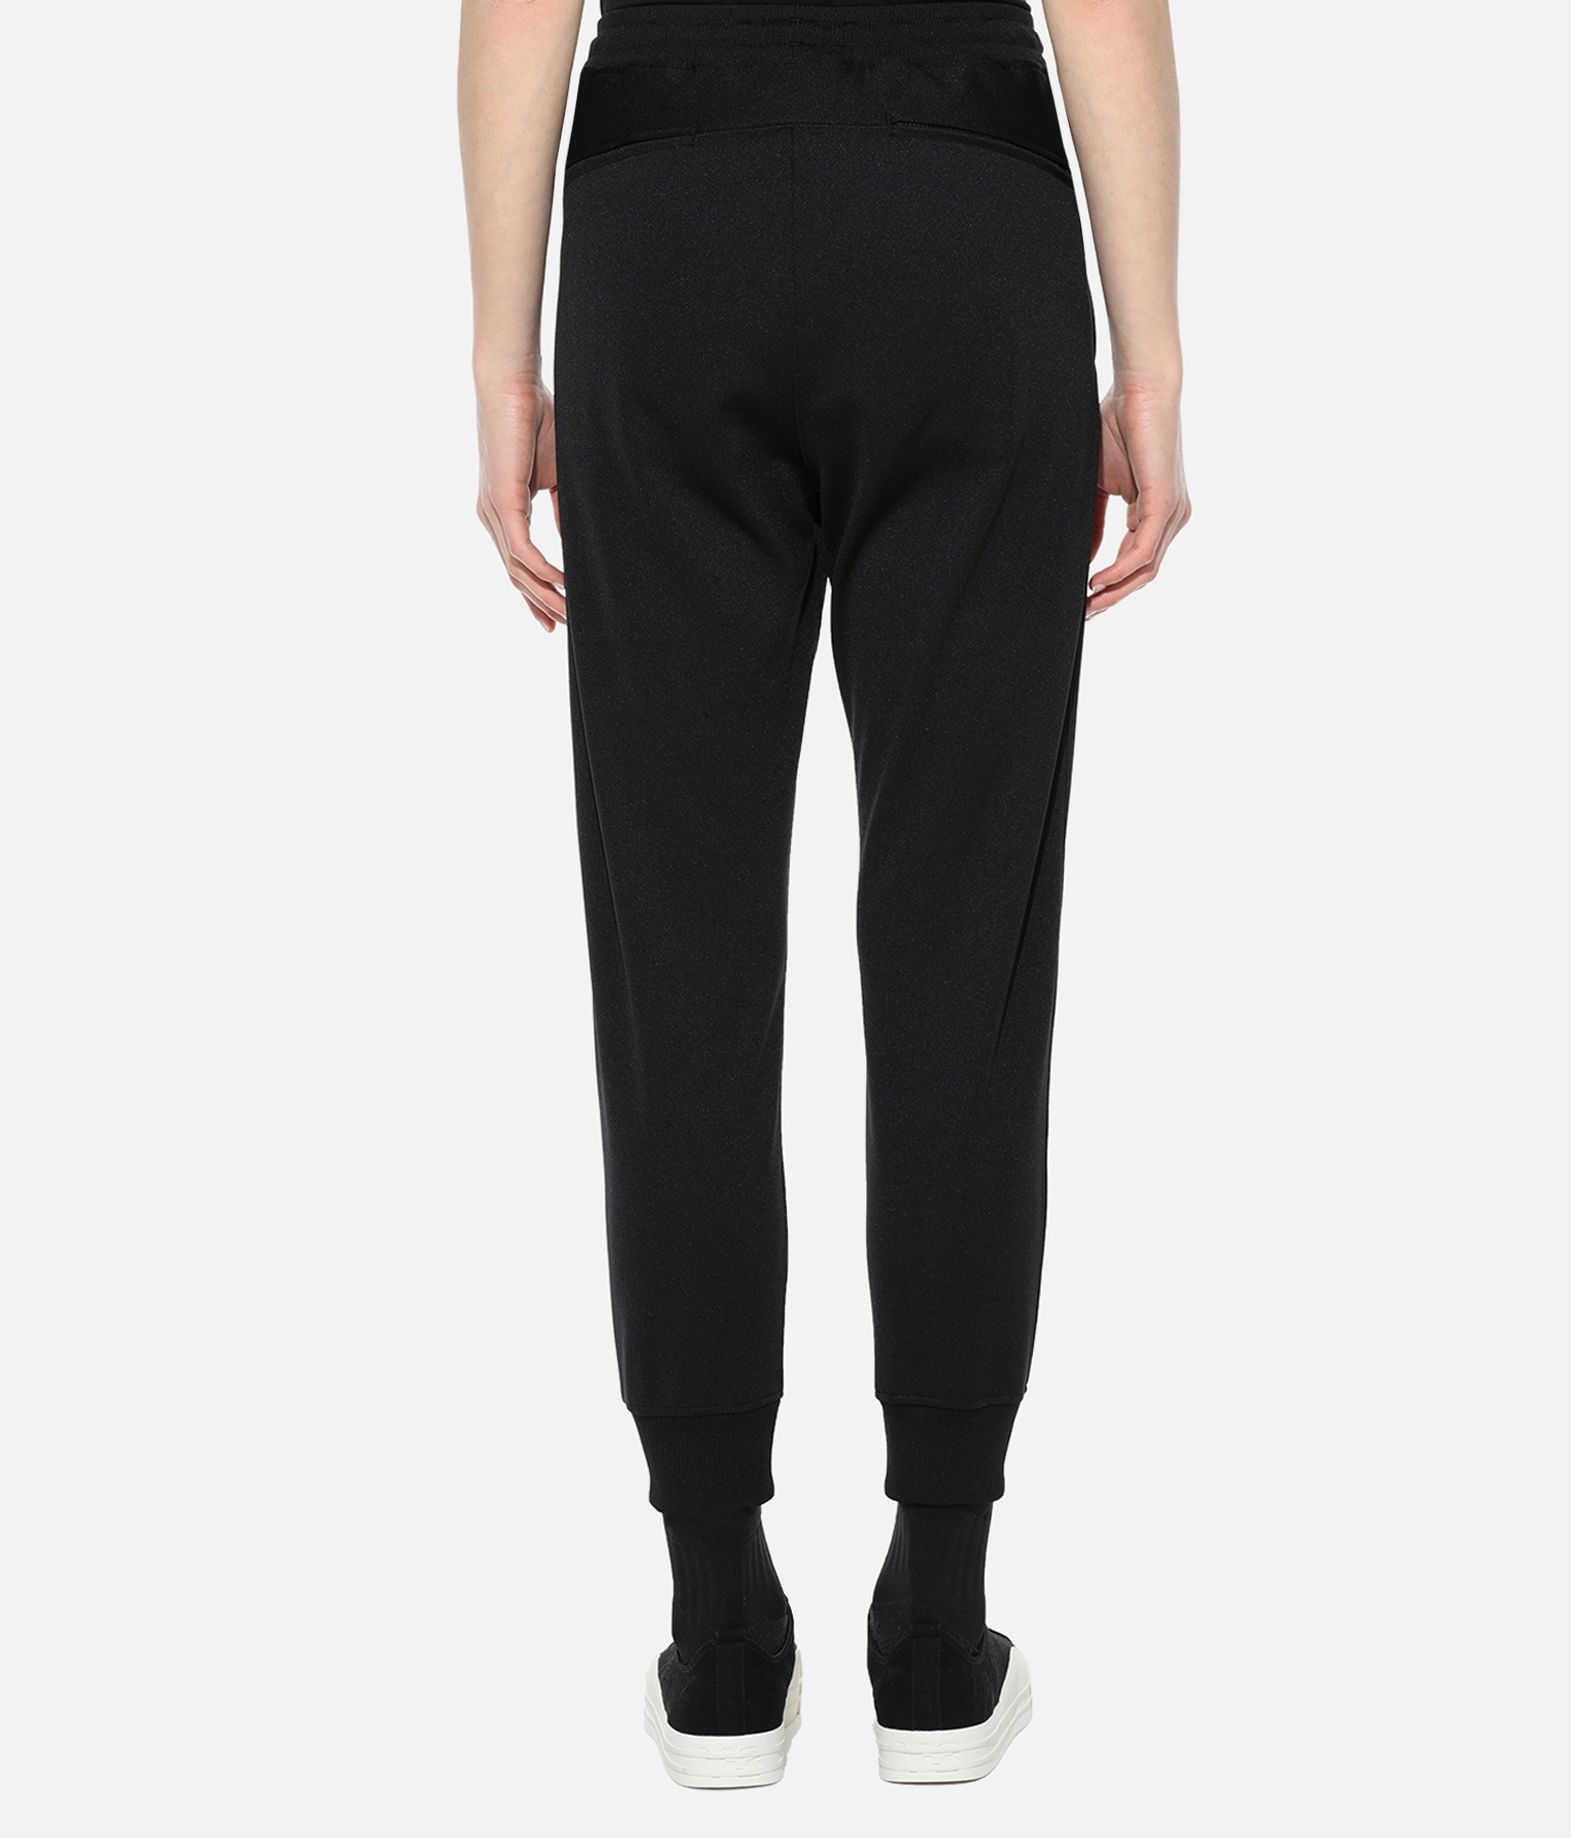 Y-3 Y-3 Classic Track Pants Track pant Woman d